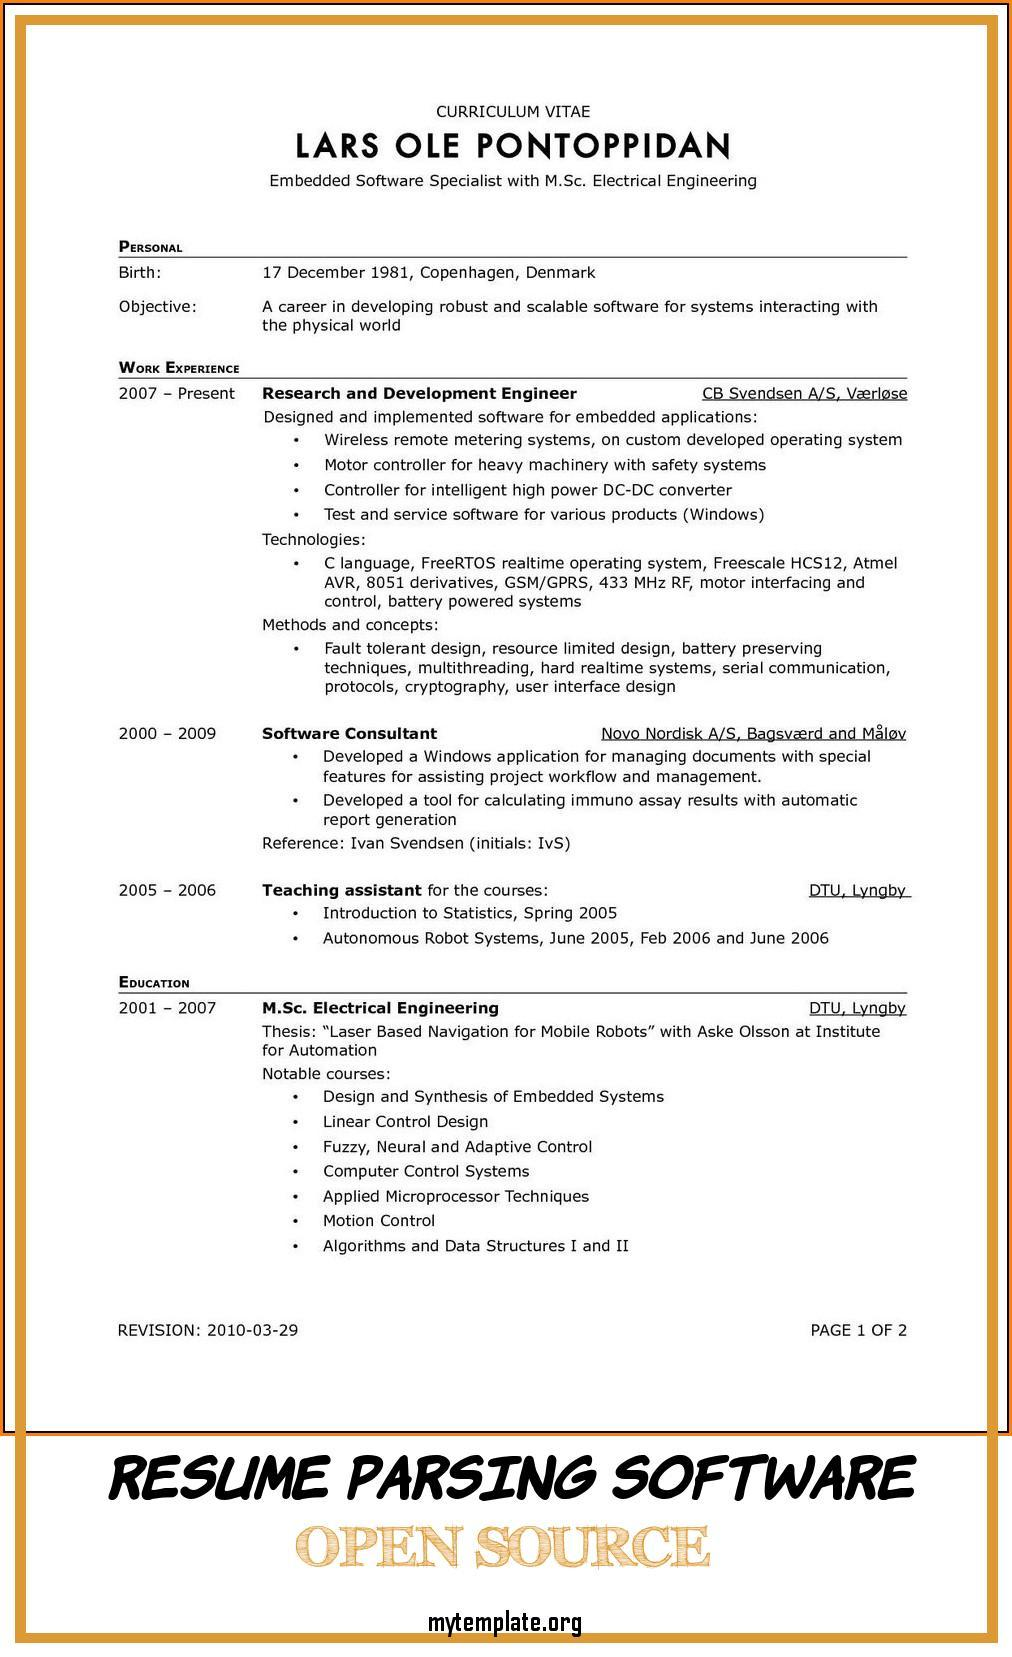 resume parsing software open source free templates and analysis of parser examples pin Resume Resume Parsing And Analysis